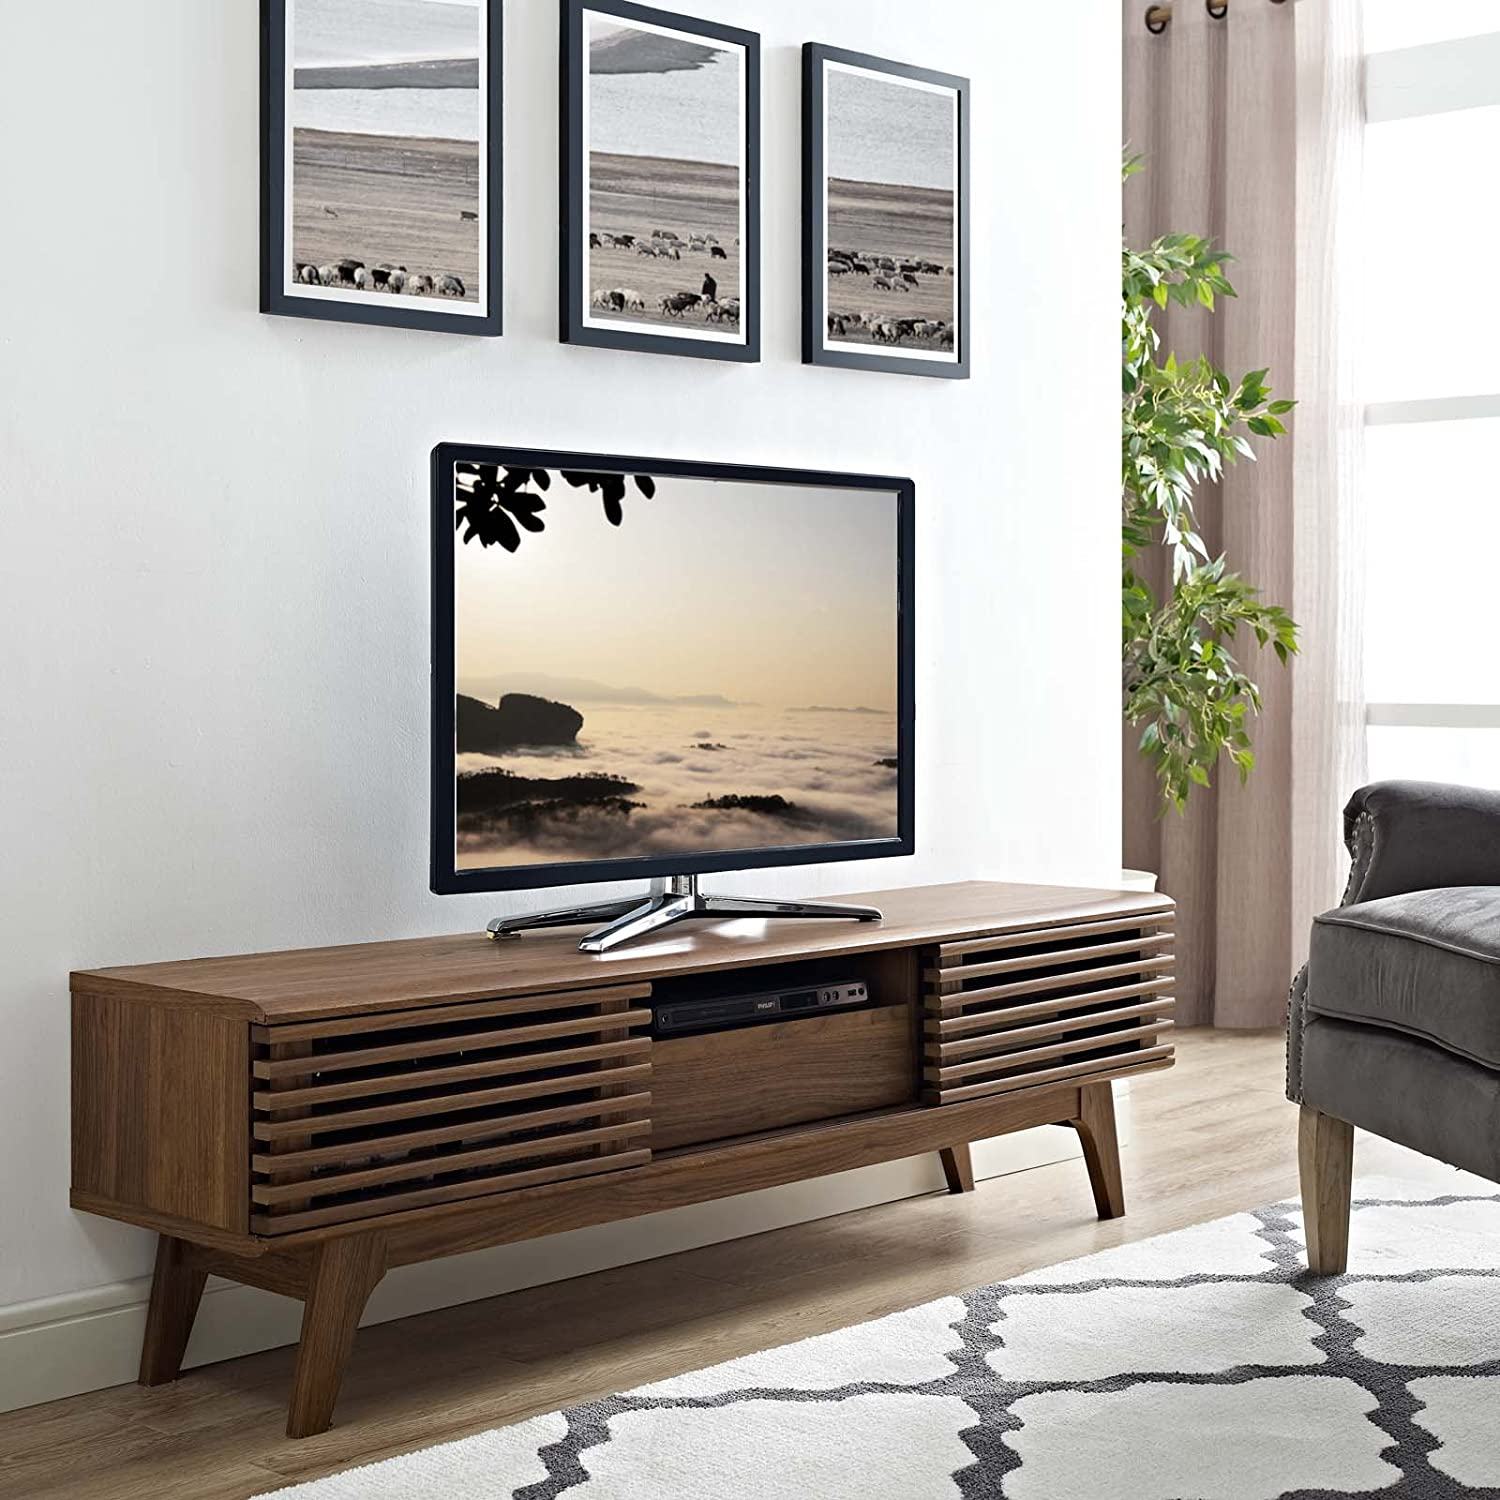 9. Modway Render Modern TV Stand- Best Wooden Design